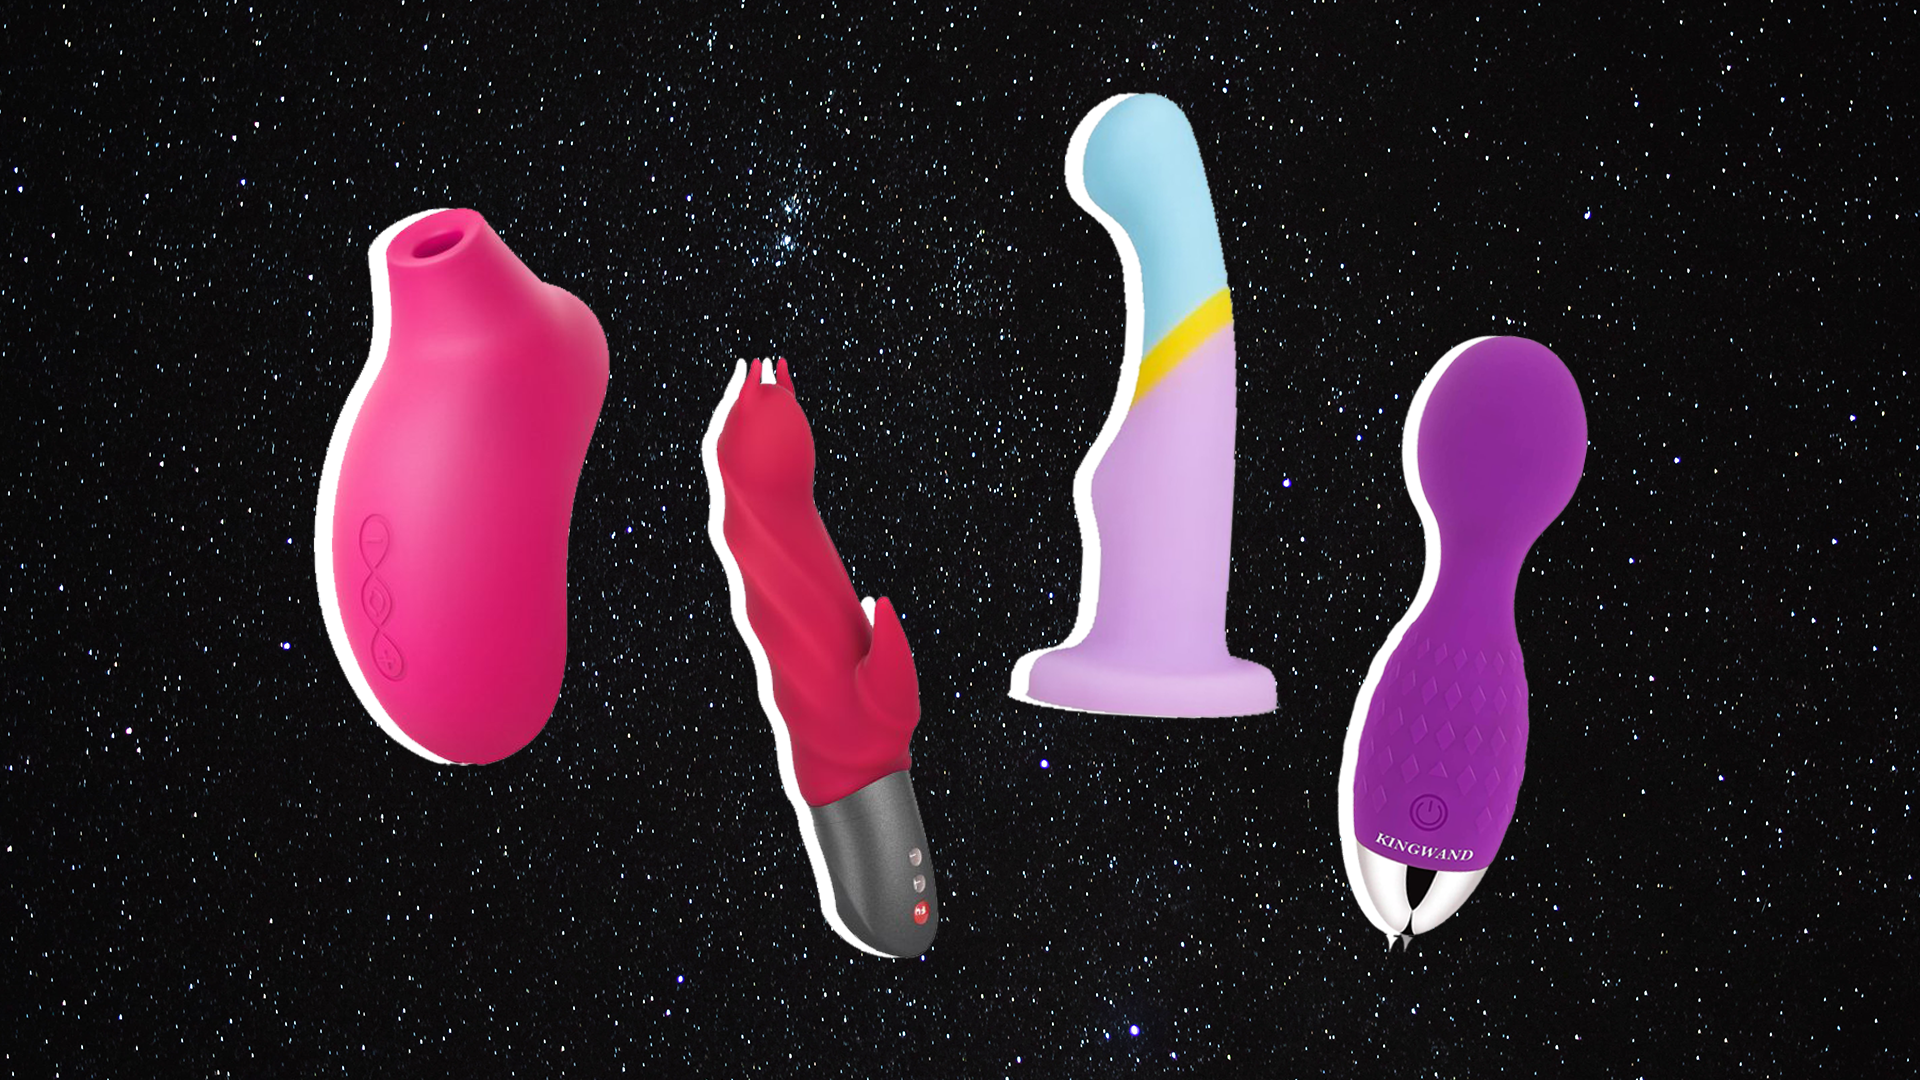 The Best Sex Toy For Every Zodiac Sign, Based On Your Personality